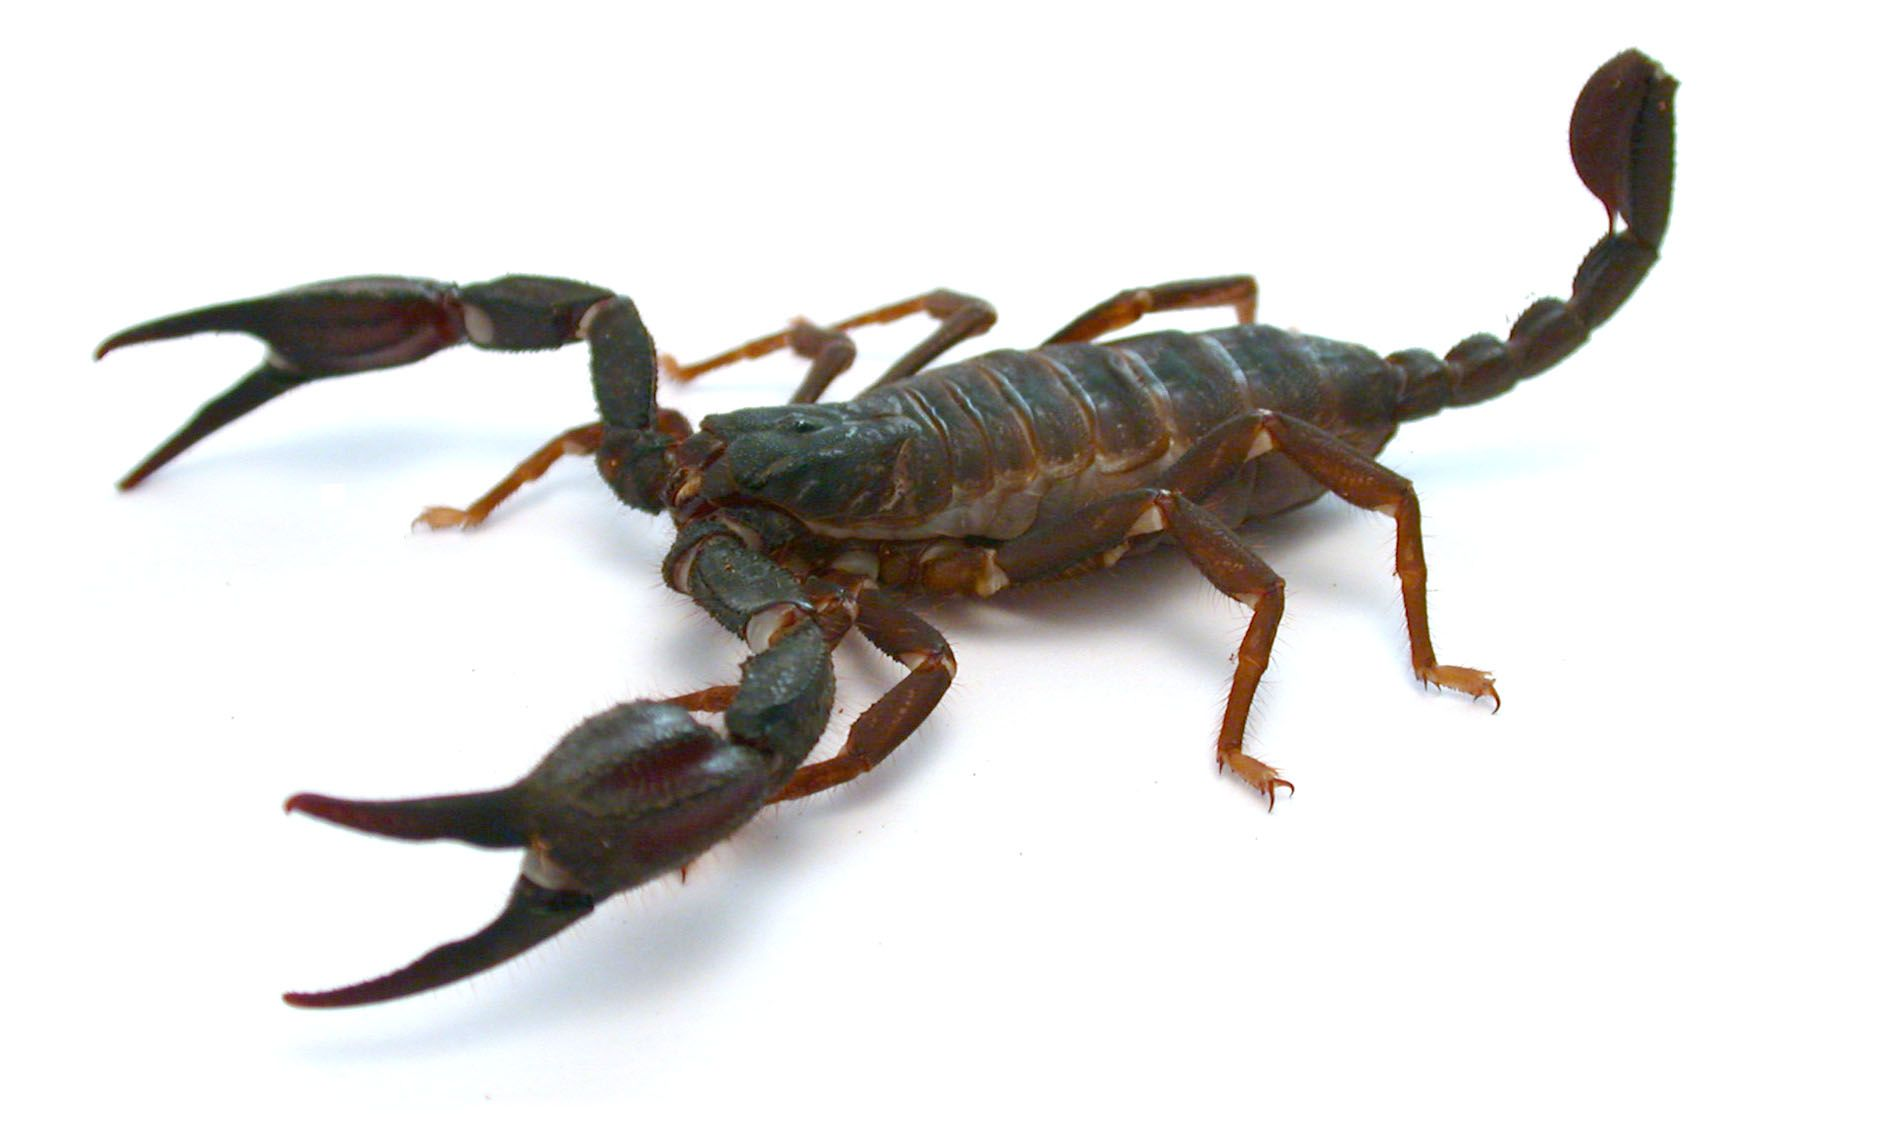 Dangerous Scorpion Image